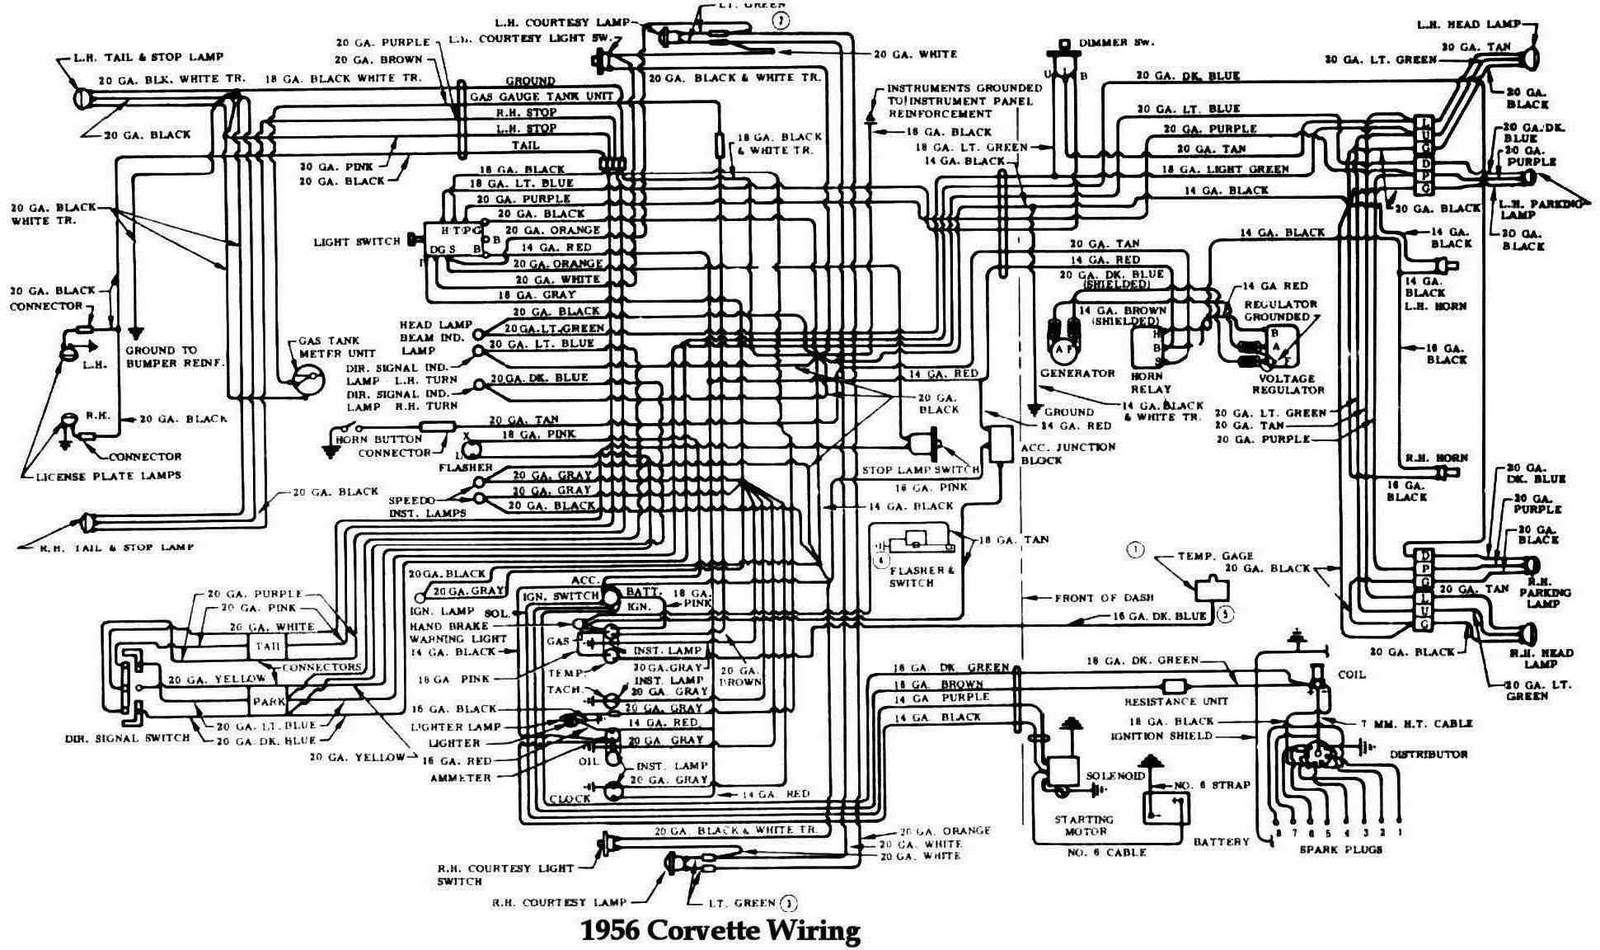 1976 Corvette Wiring Diagrams FULL HD Version Wiring Diagrams -  URIS-MANUAL.ANIMADISCO.ITDiagram Database And Images